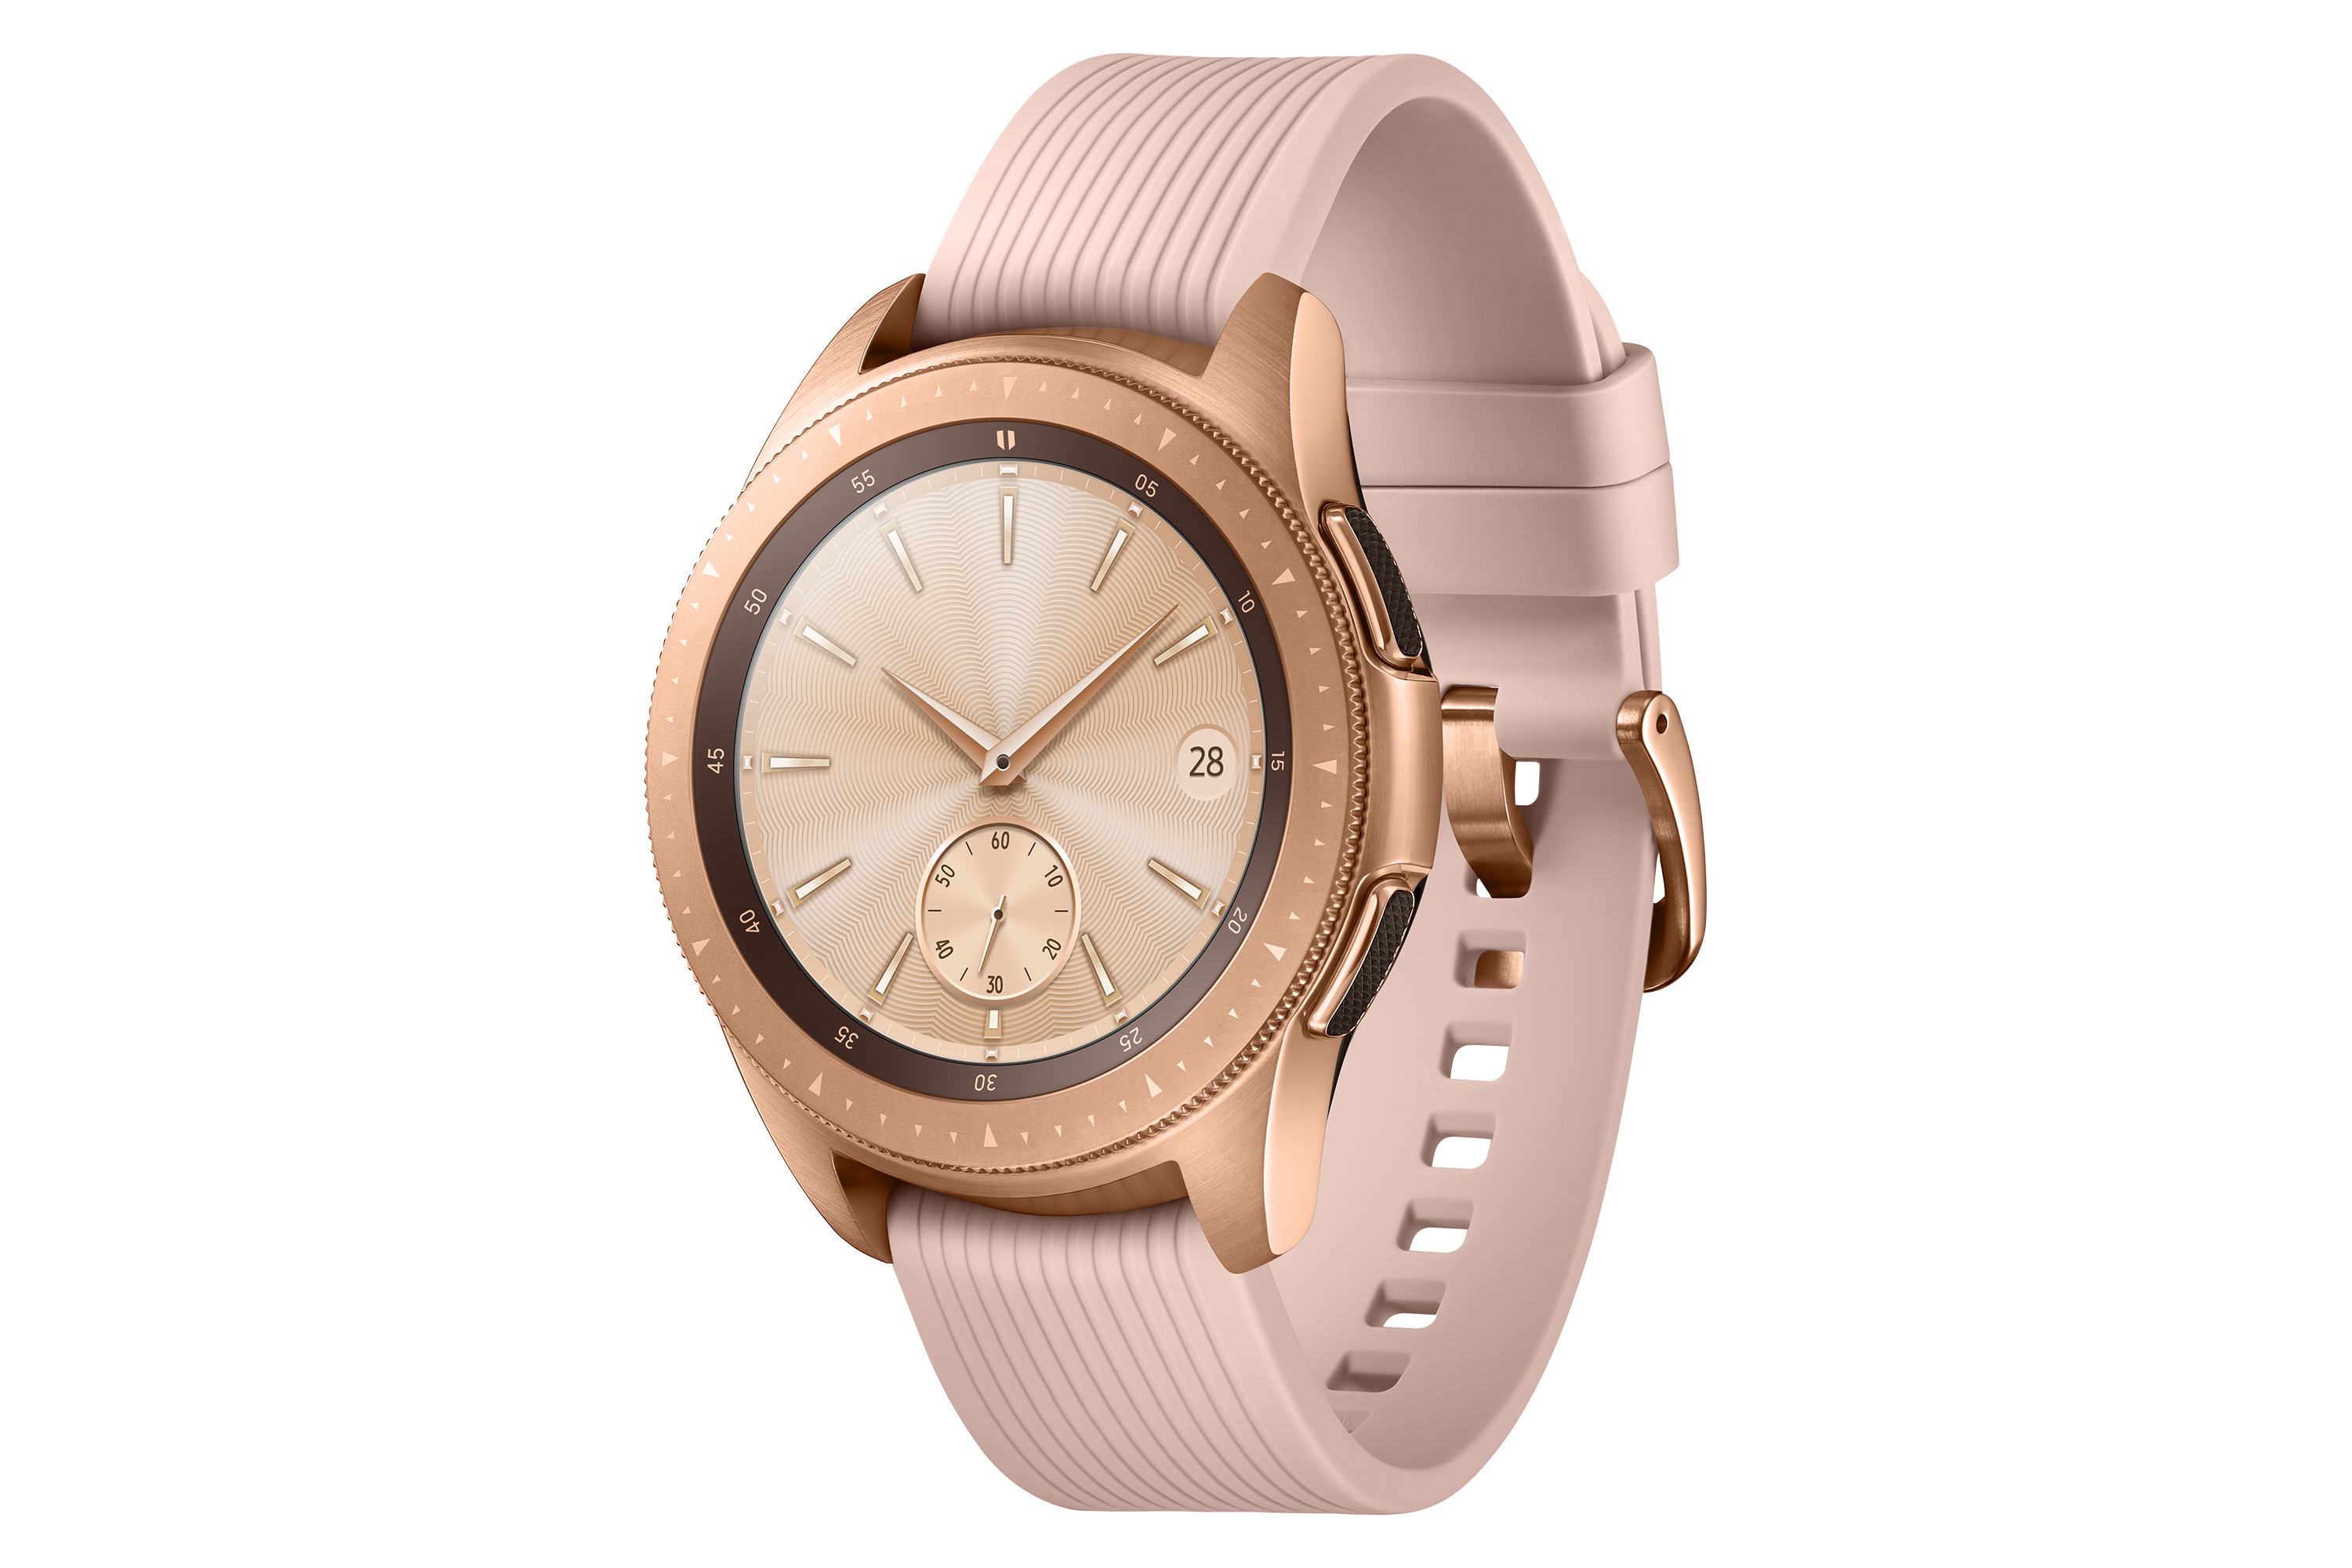 SAMSUNG Galaxy Watch R810 (42 mm) Rose Gold SM-R810NZDAXEZ